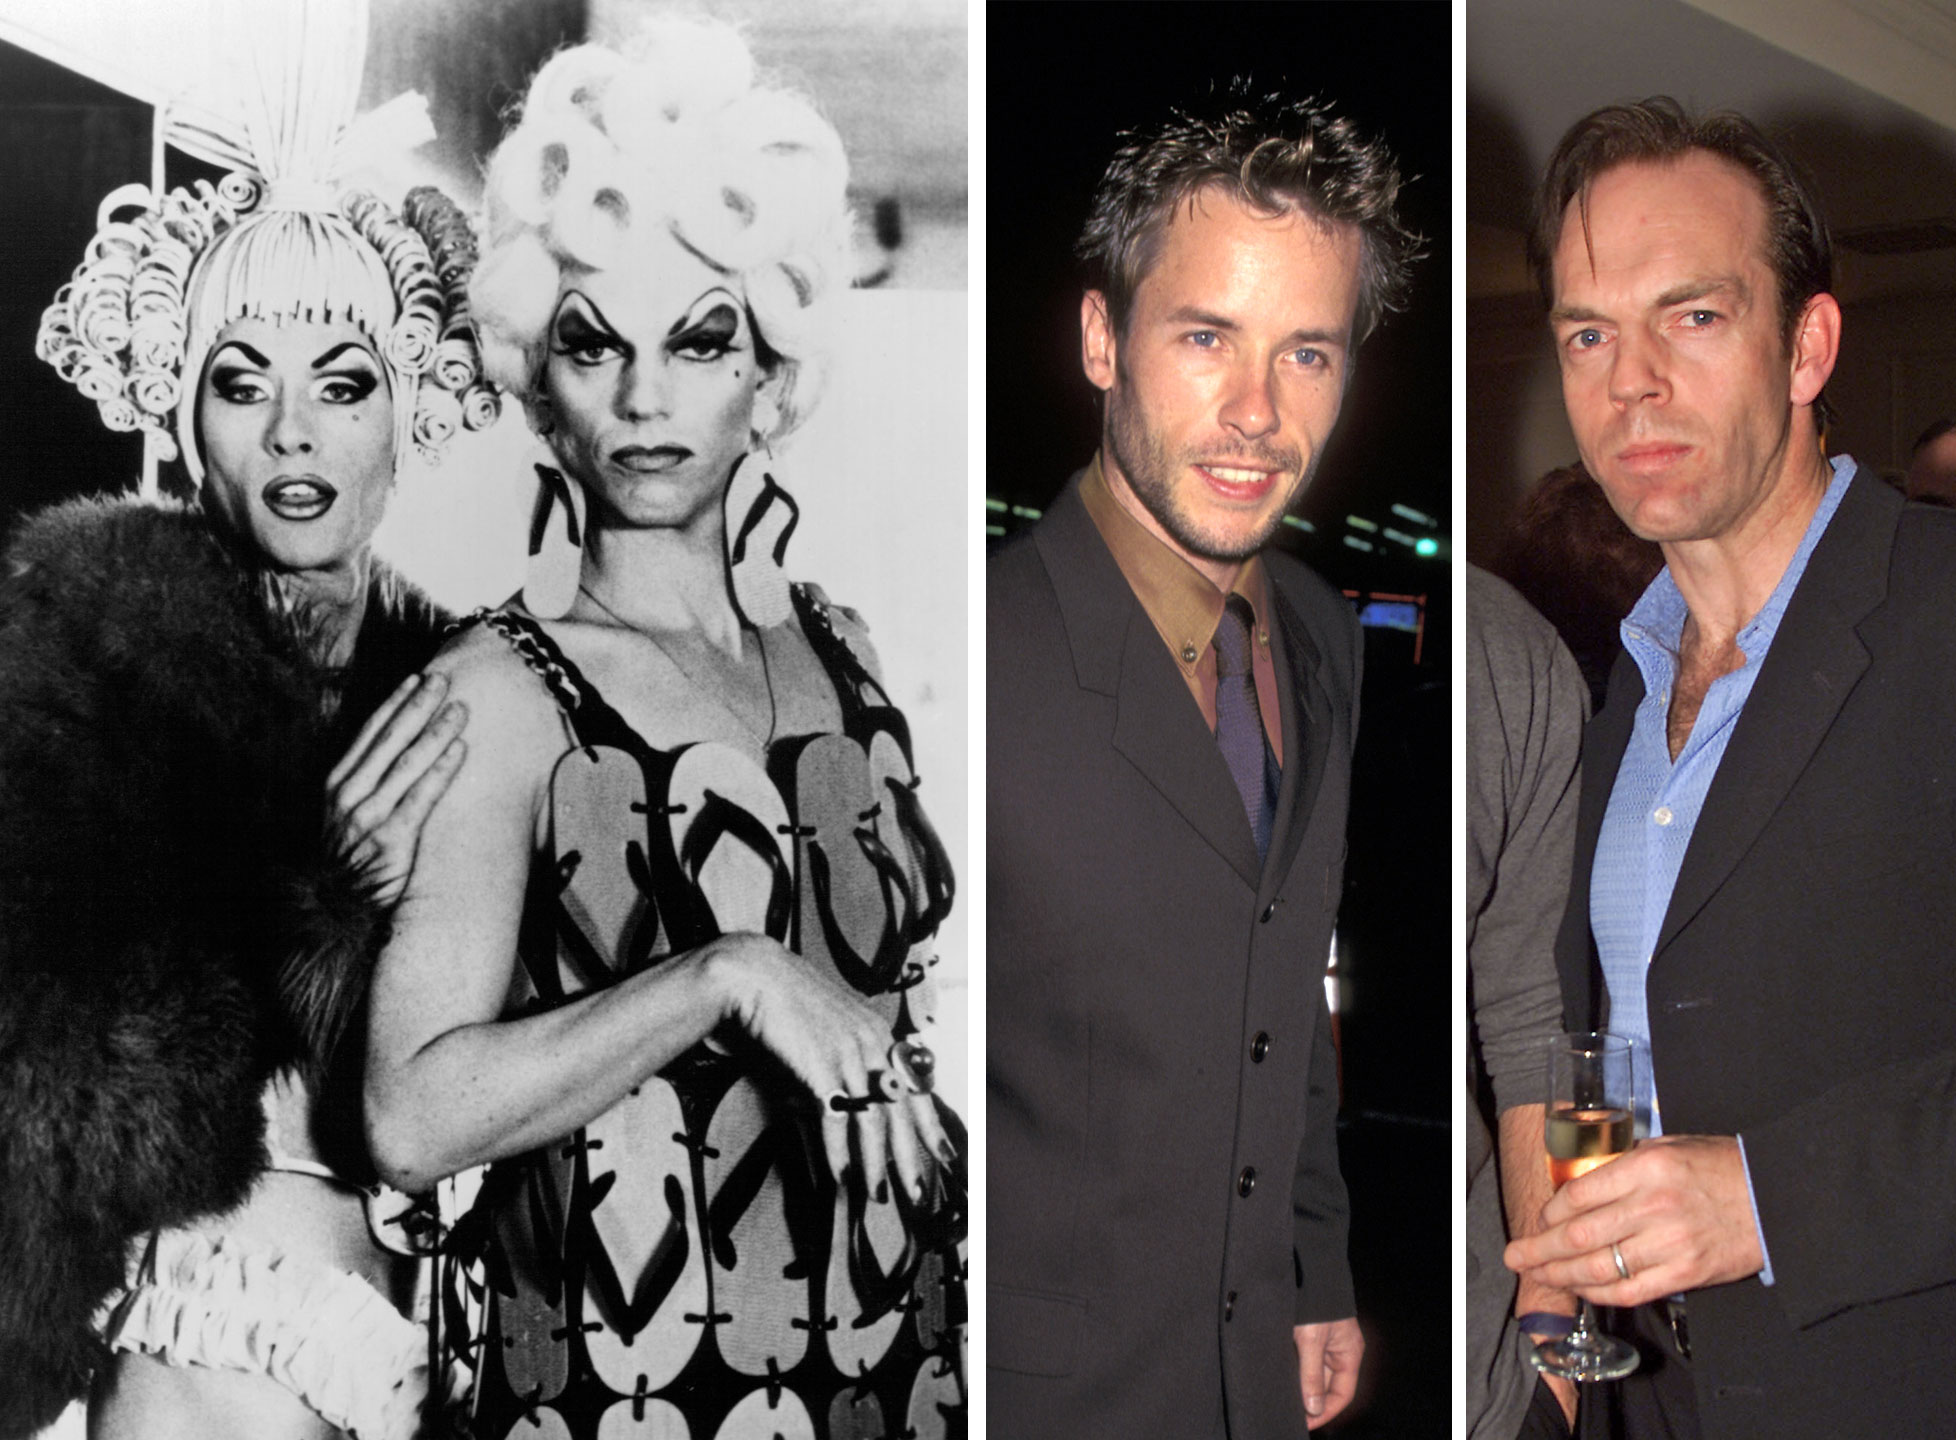 Guy Pearce as Felicia Jollygoodfellow and Hugo Weaving as Mitzi Del Bra in The Adventures of Priscilla, Queen of the Desert